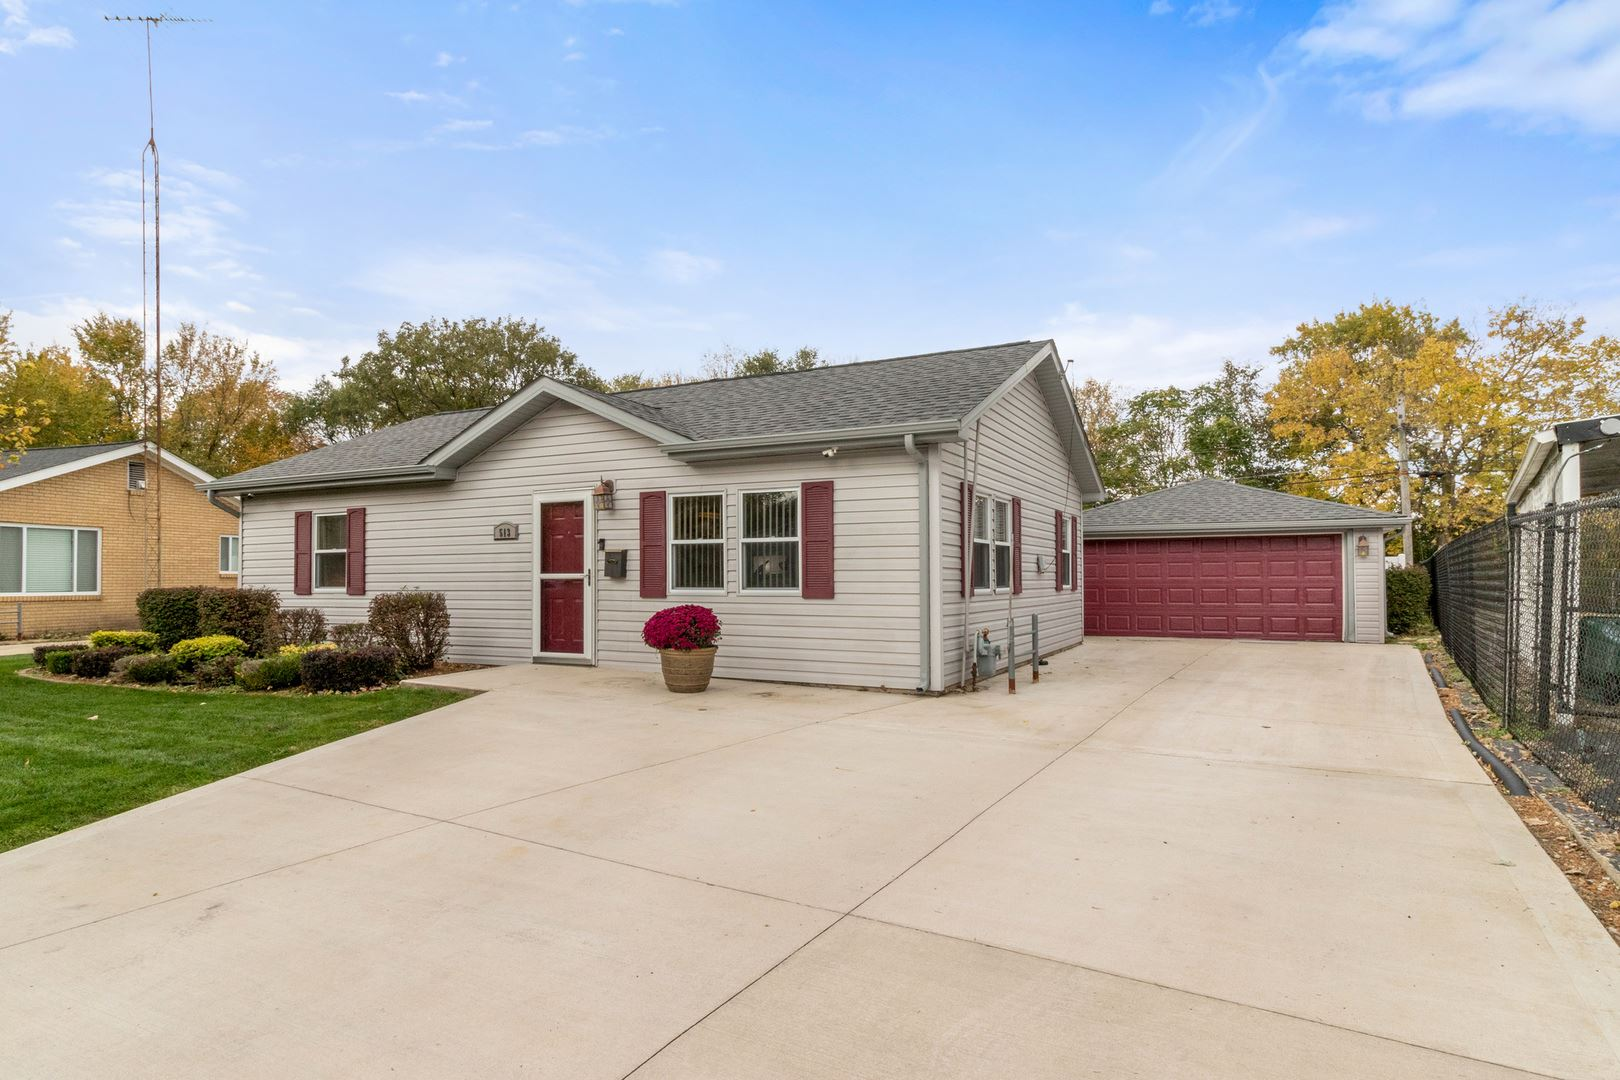 Photo of 513 Sehring Avenue, Joliet, IL 60436 (MLS # 10910750)